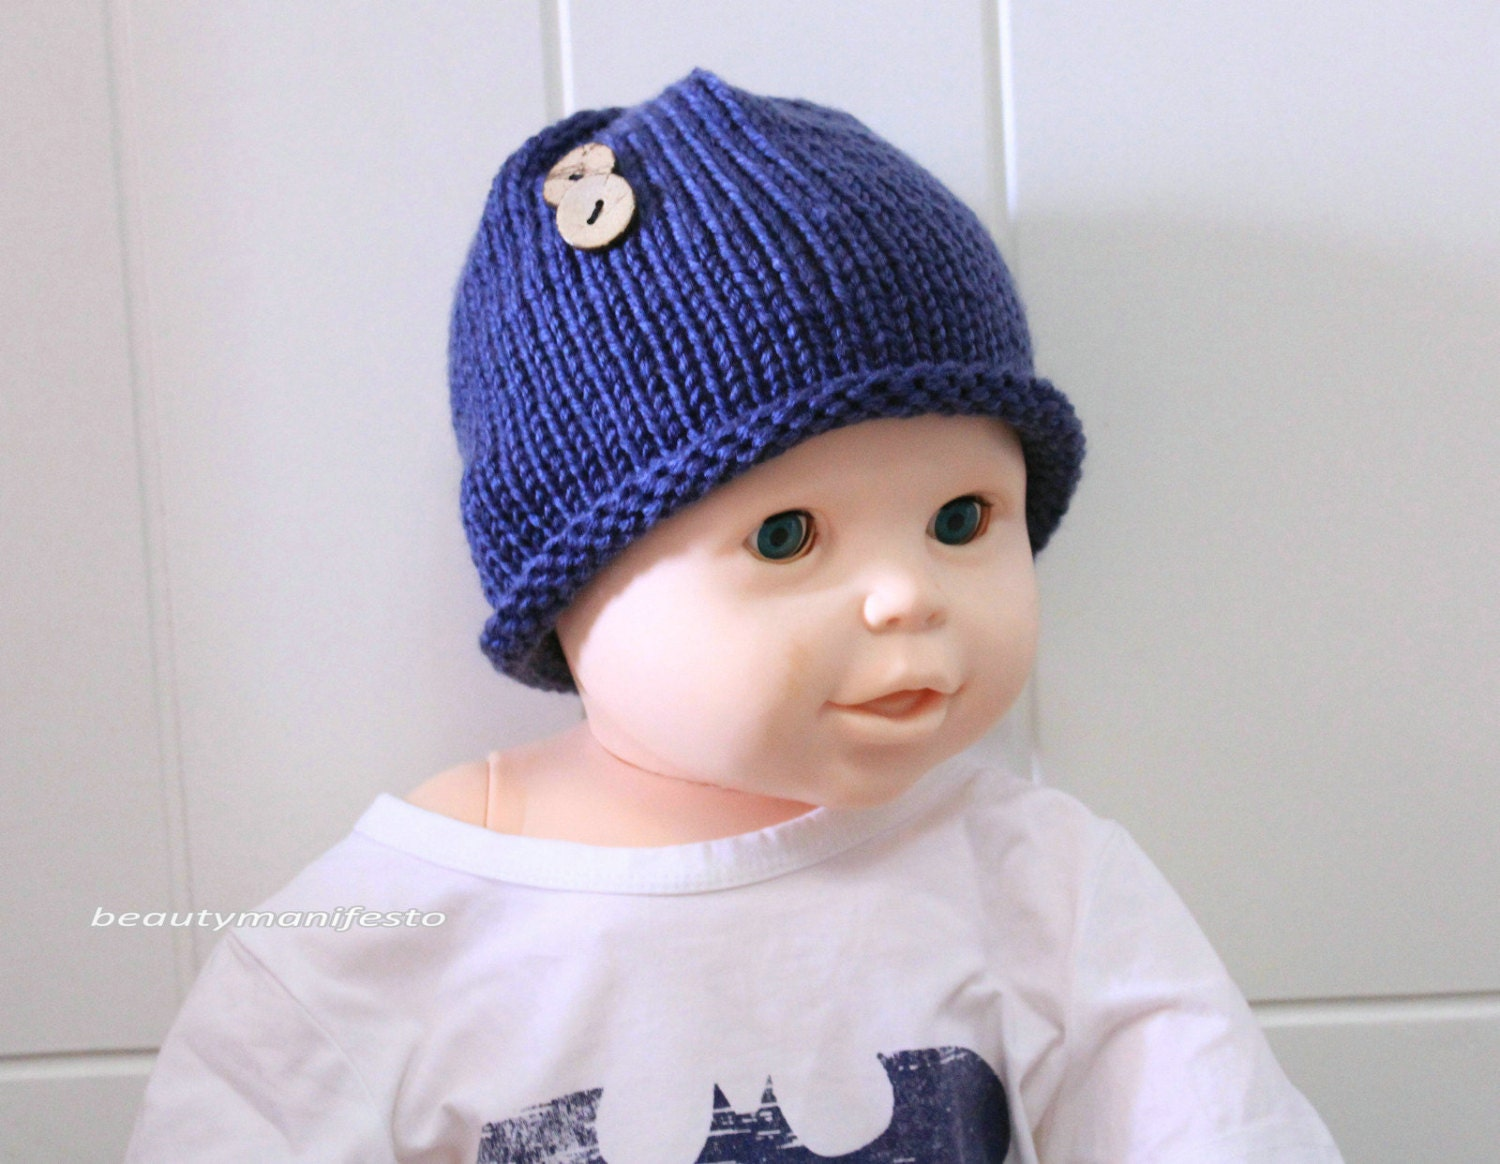 Old Navy is your prime destination for baby hats. Shop today and discover our collection of infant and newborn hats. Baby Boys M. Baby Girls. Shop by Size. Baby Girls M. Baby Boys M. Baby Girls ; New & Now. New Arrivals. All Dressed Up. Mini Me - .